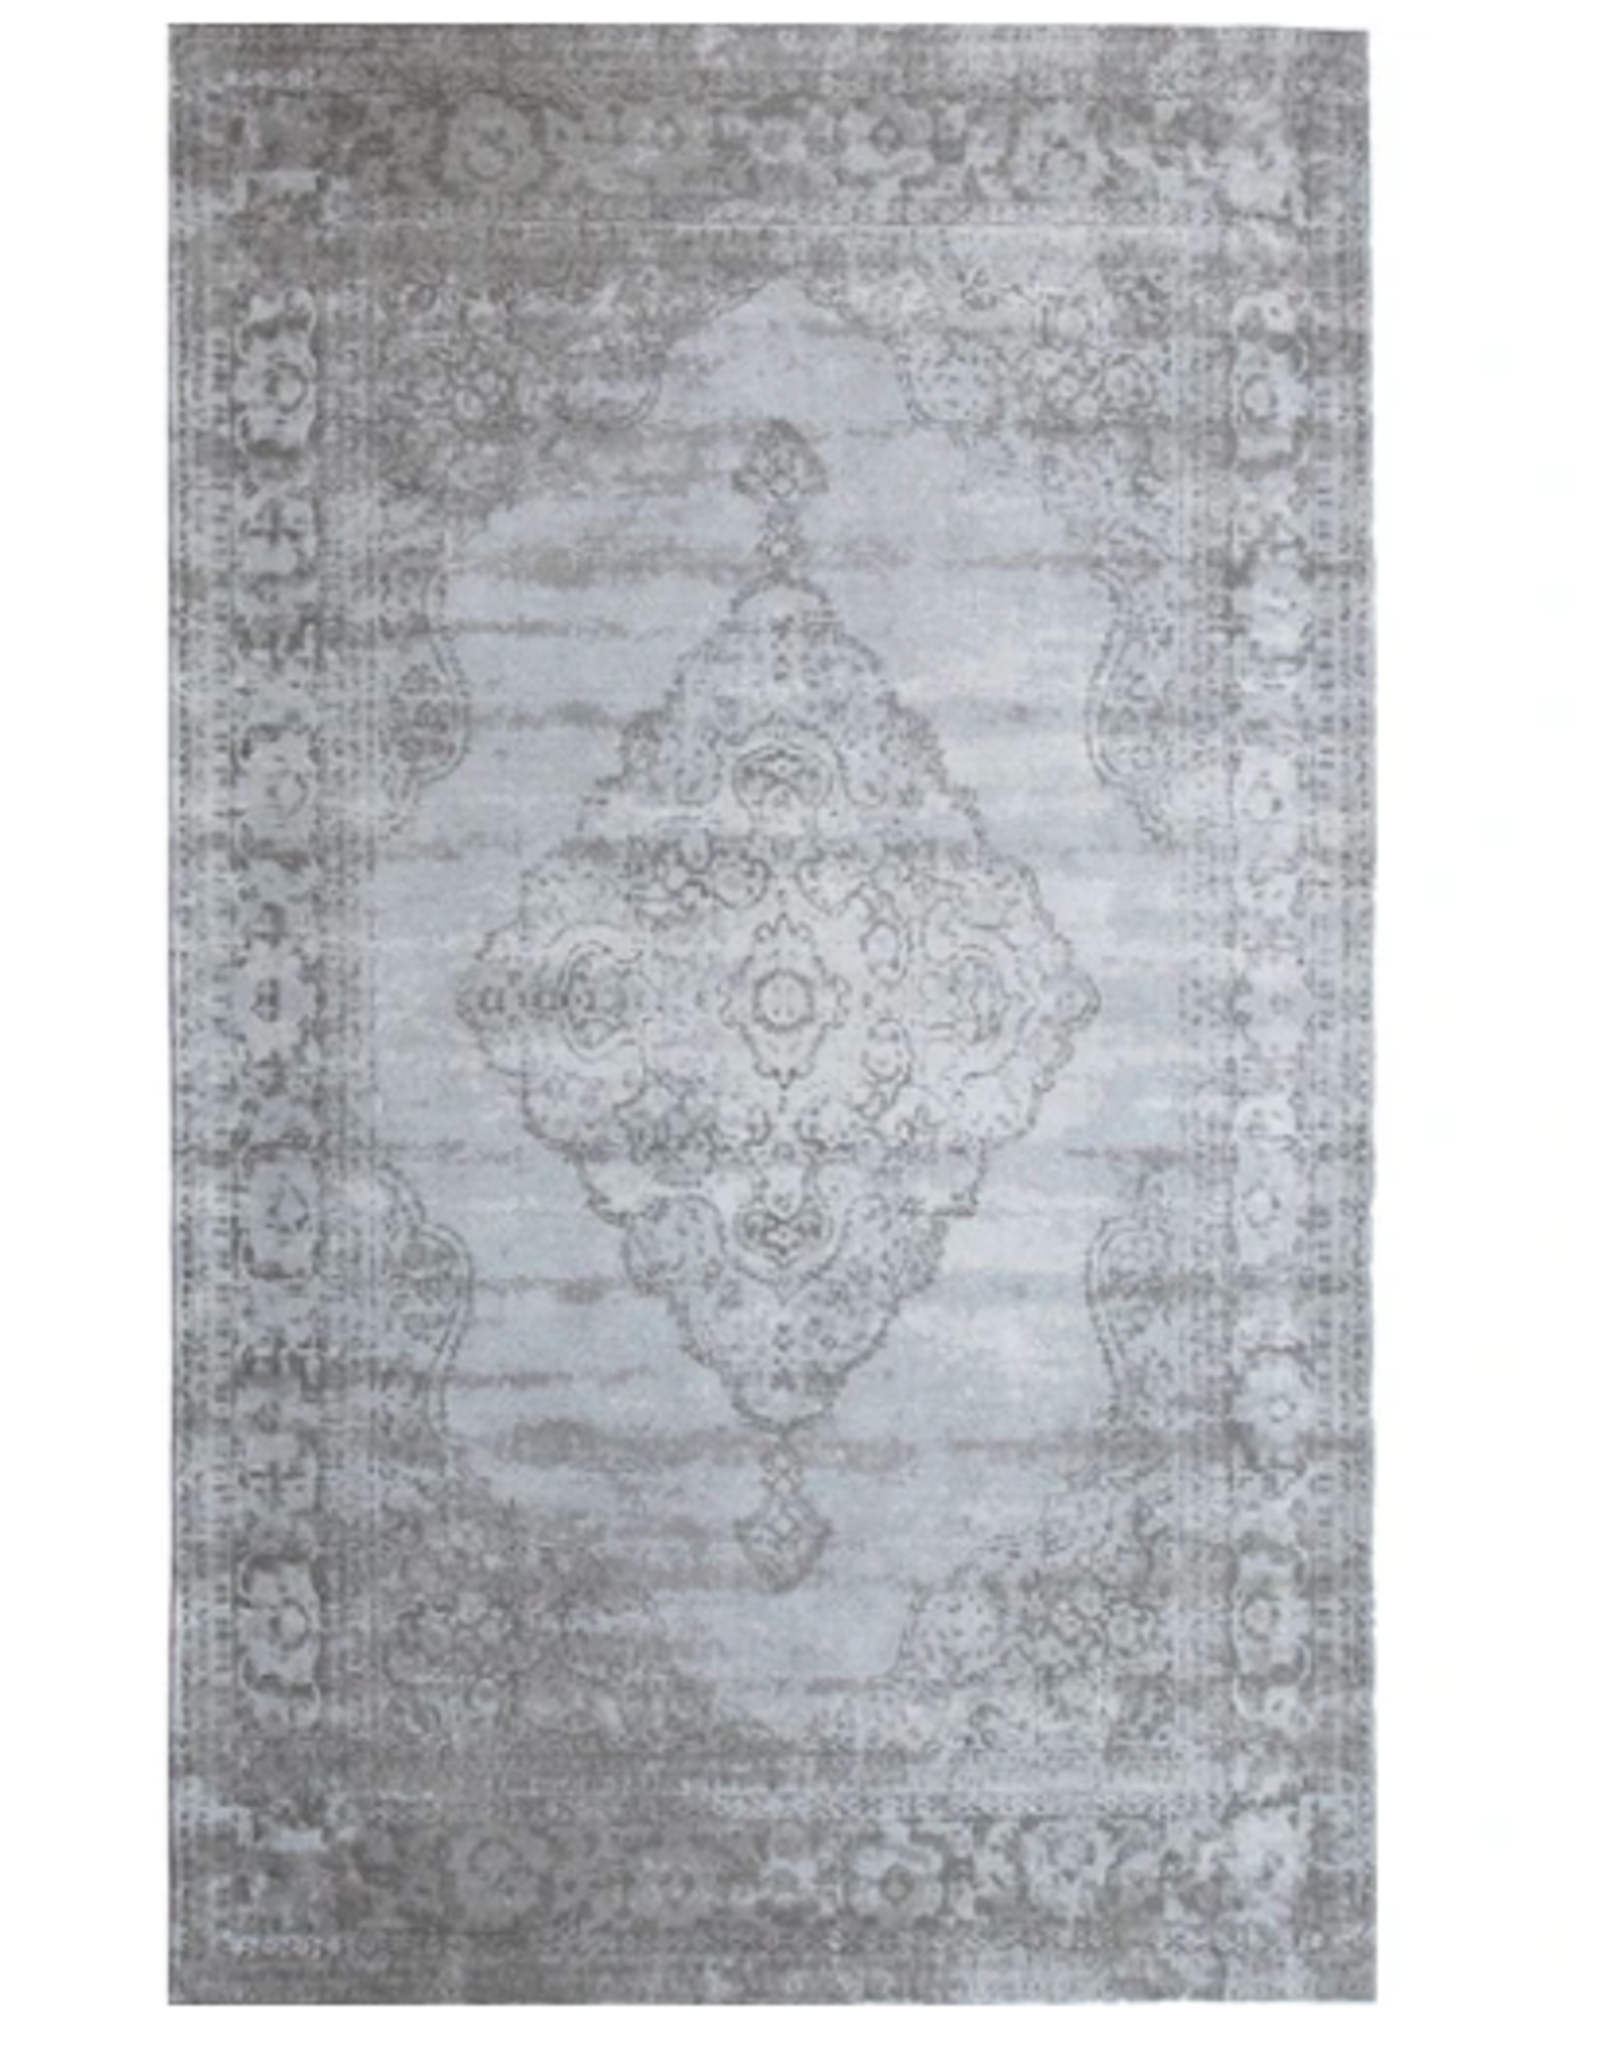 Rugs Avocado Vintage Cotton 2 x 3 Centro Dove Grey